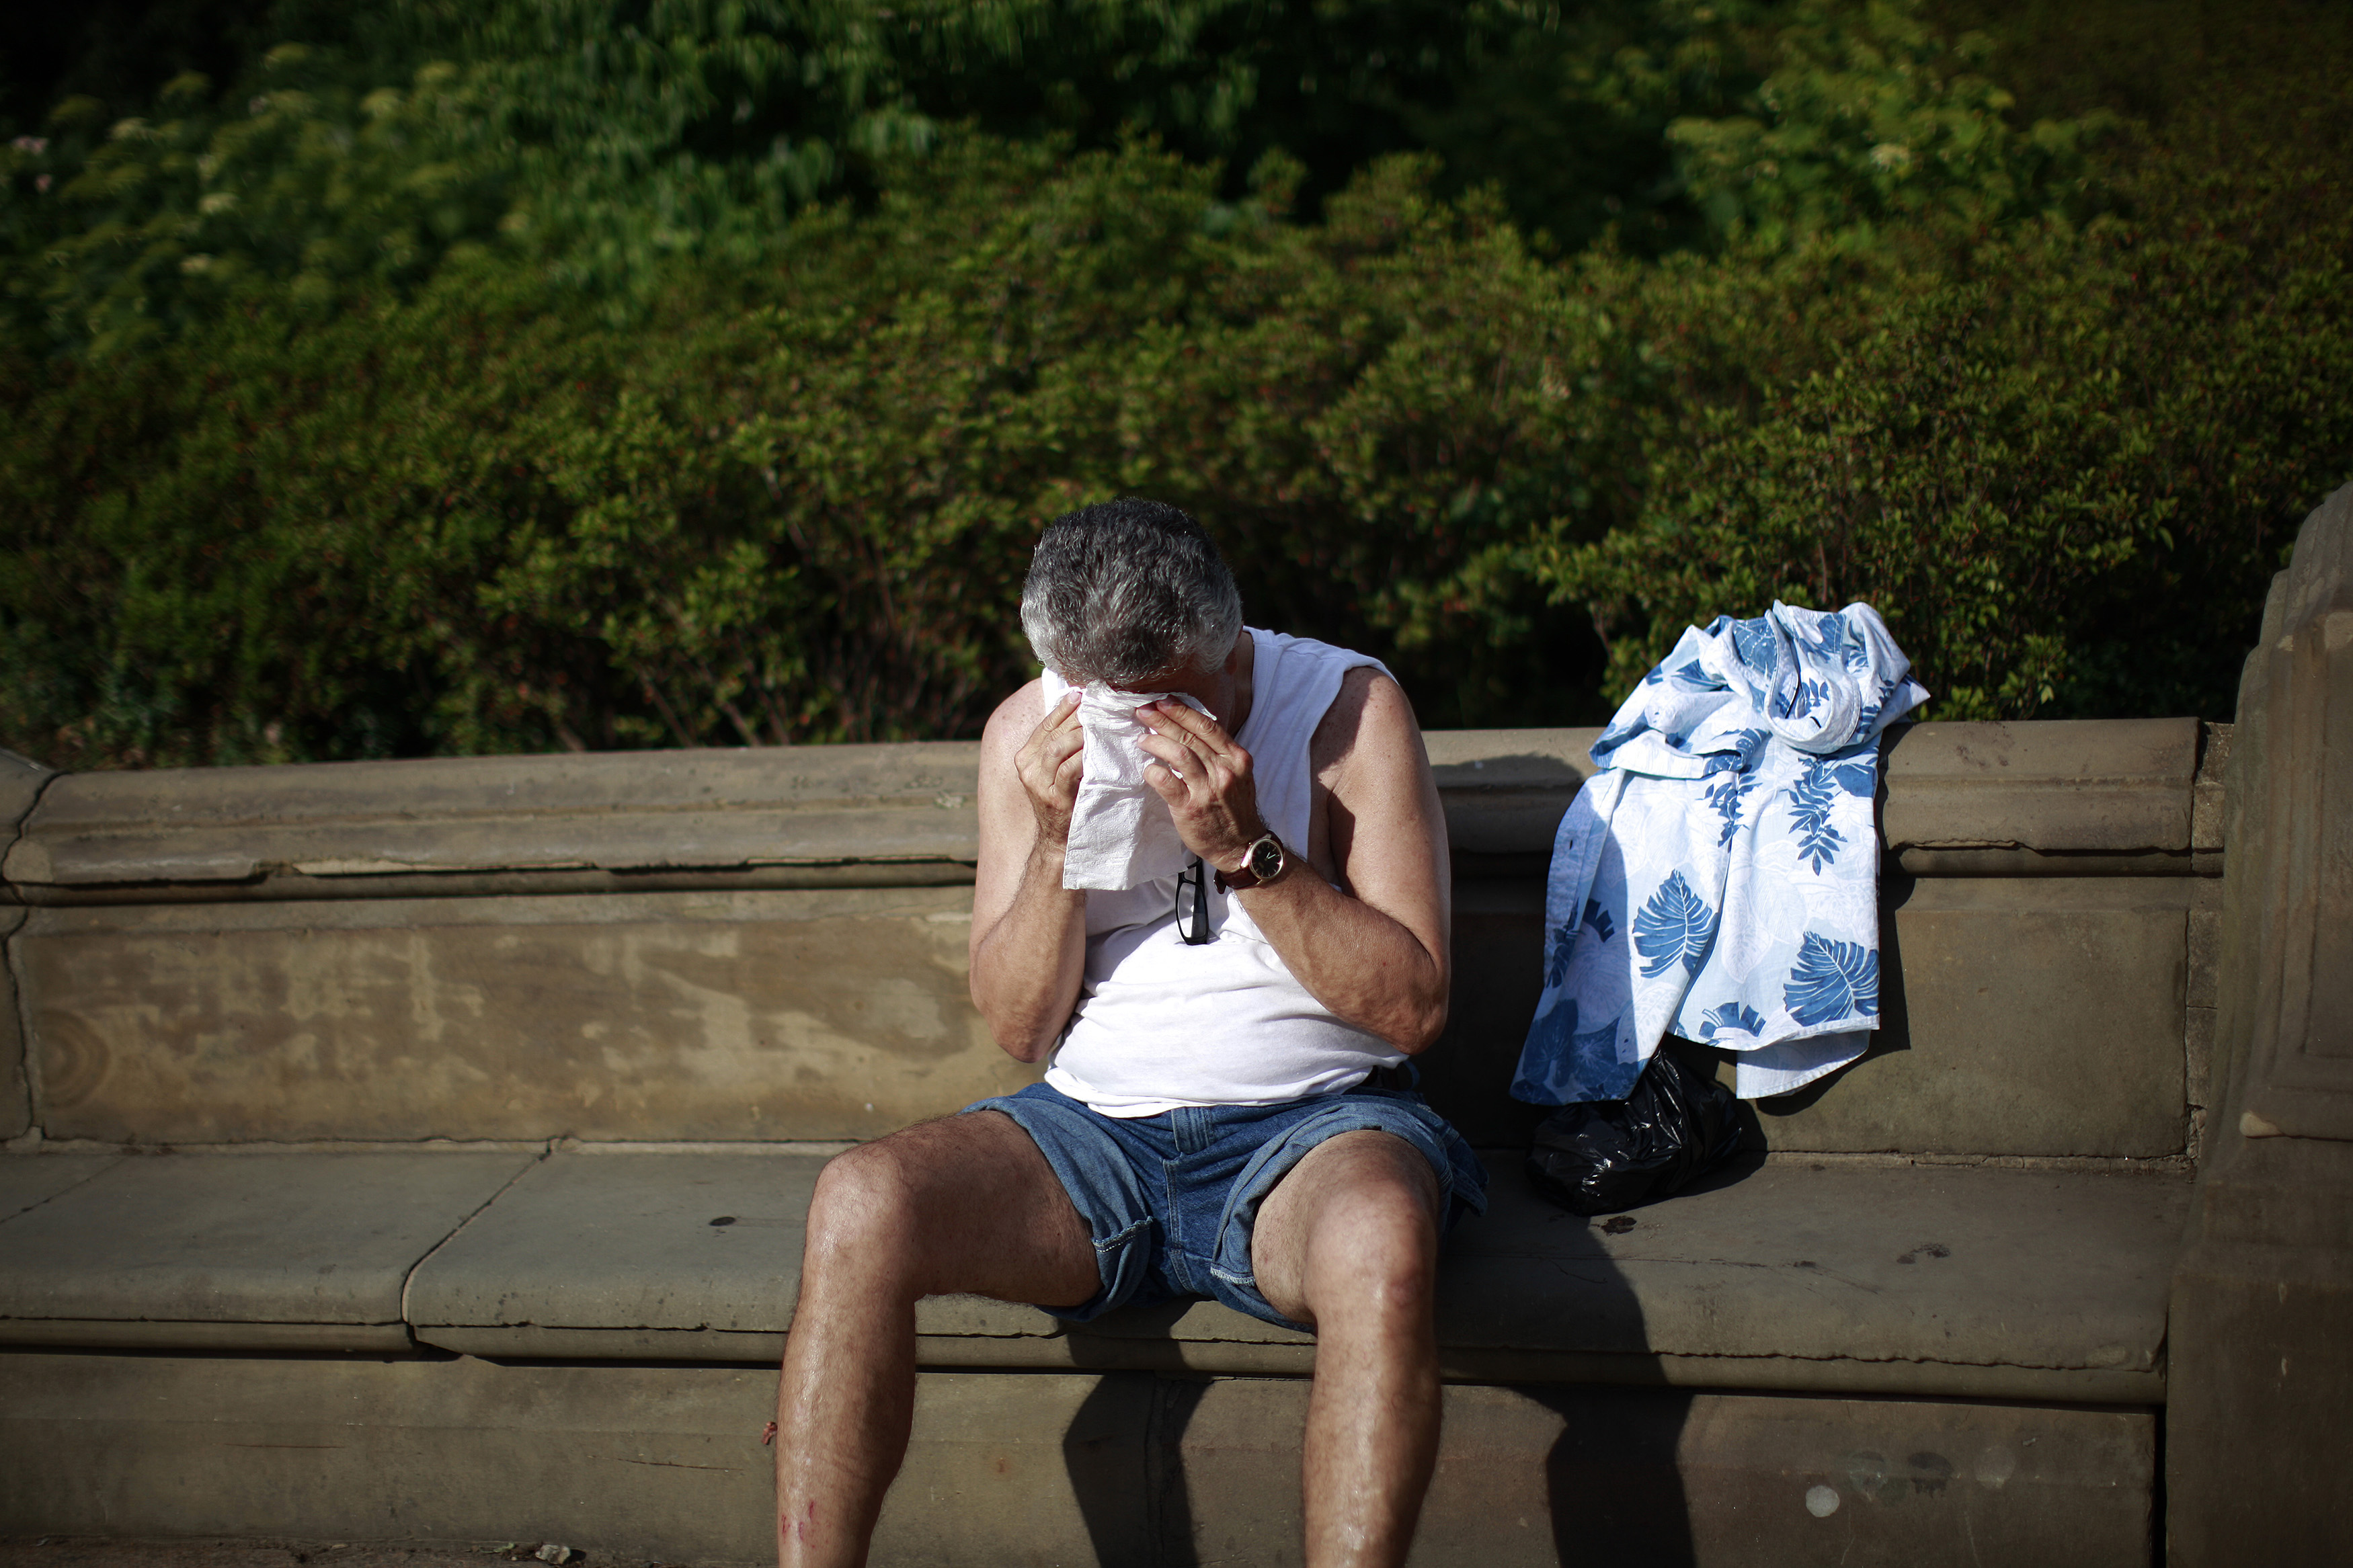 A man wipes his forehead while sitting in Central Park in New York July 5, 2012.